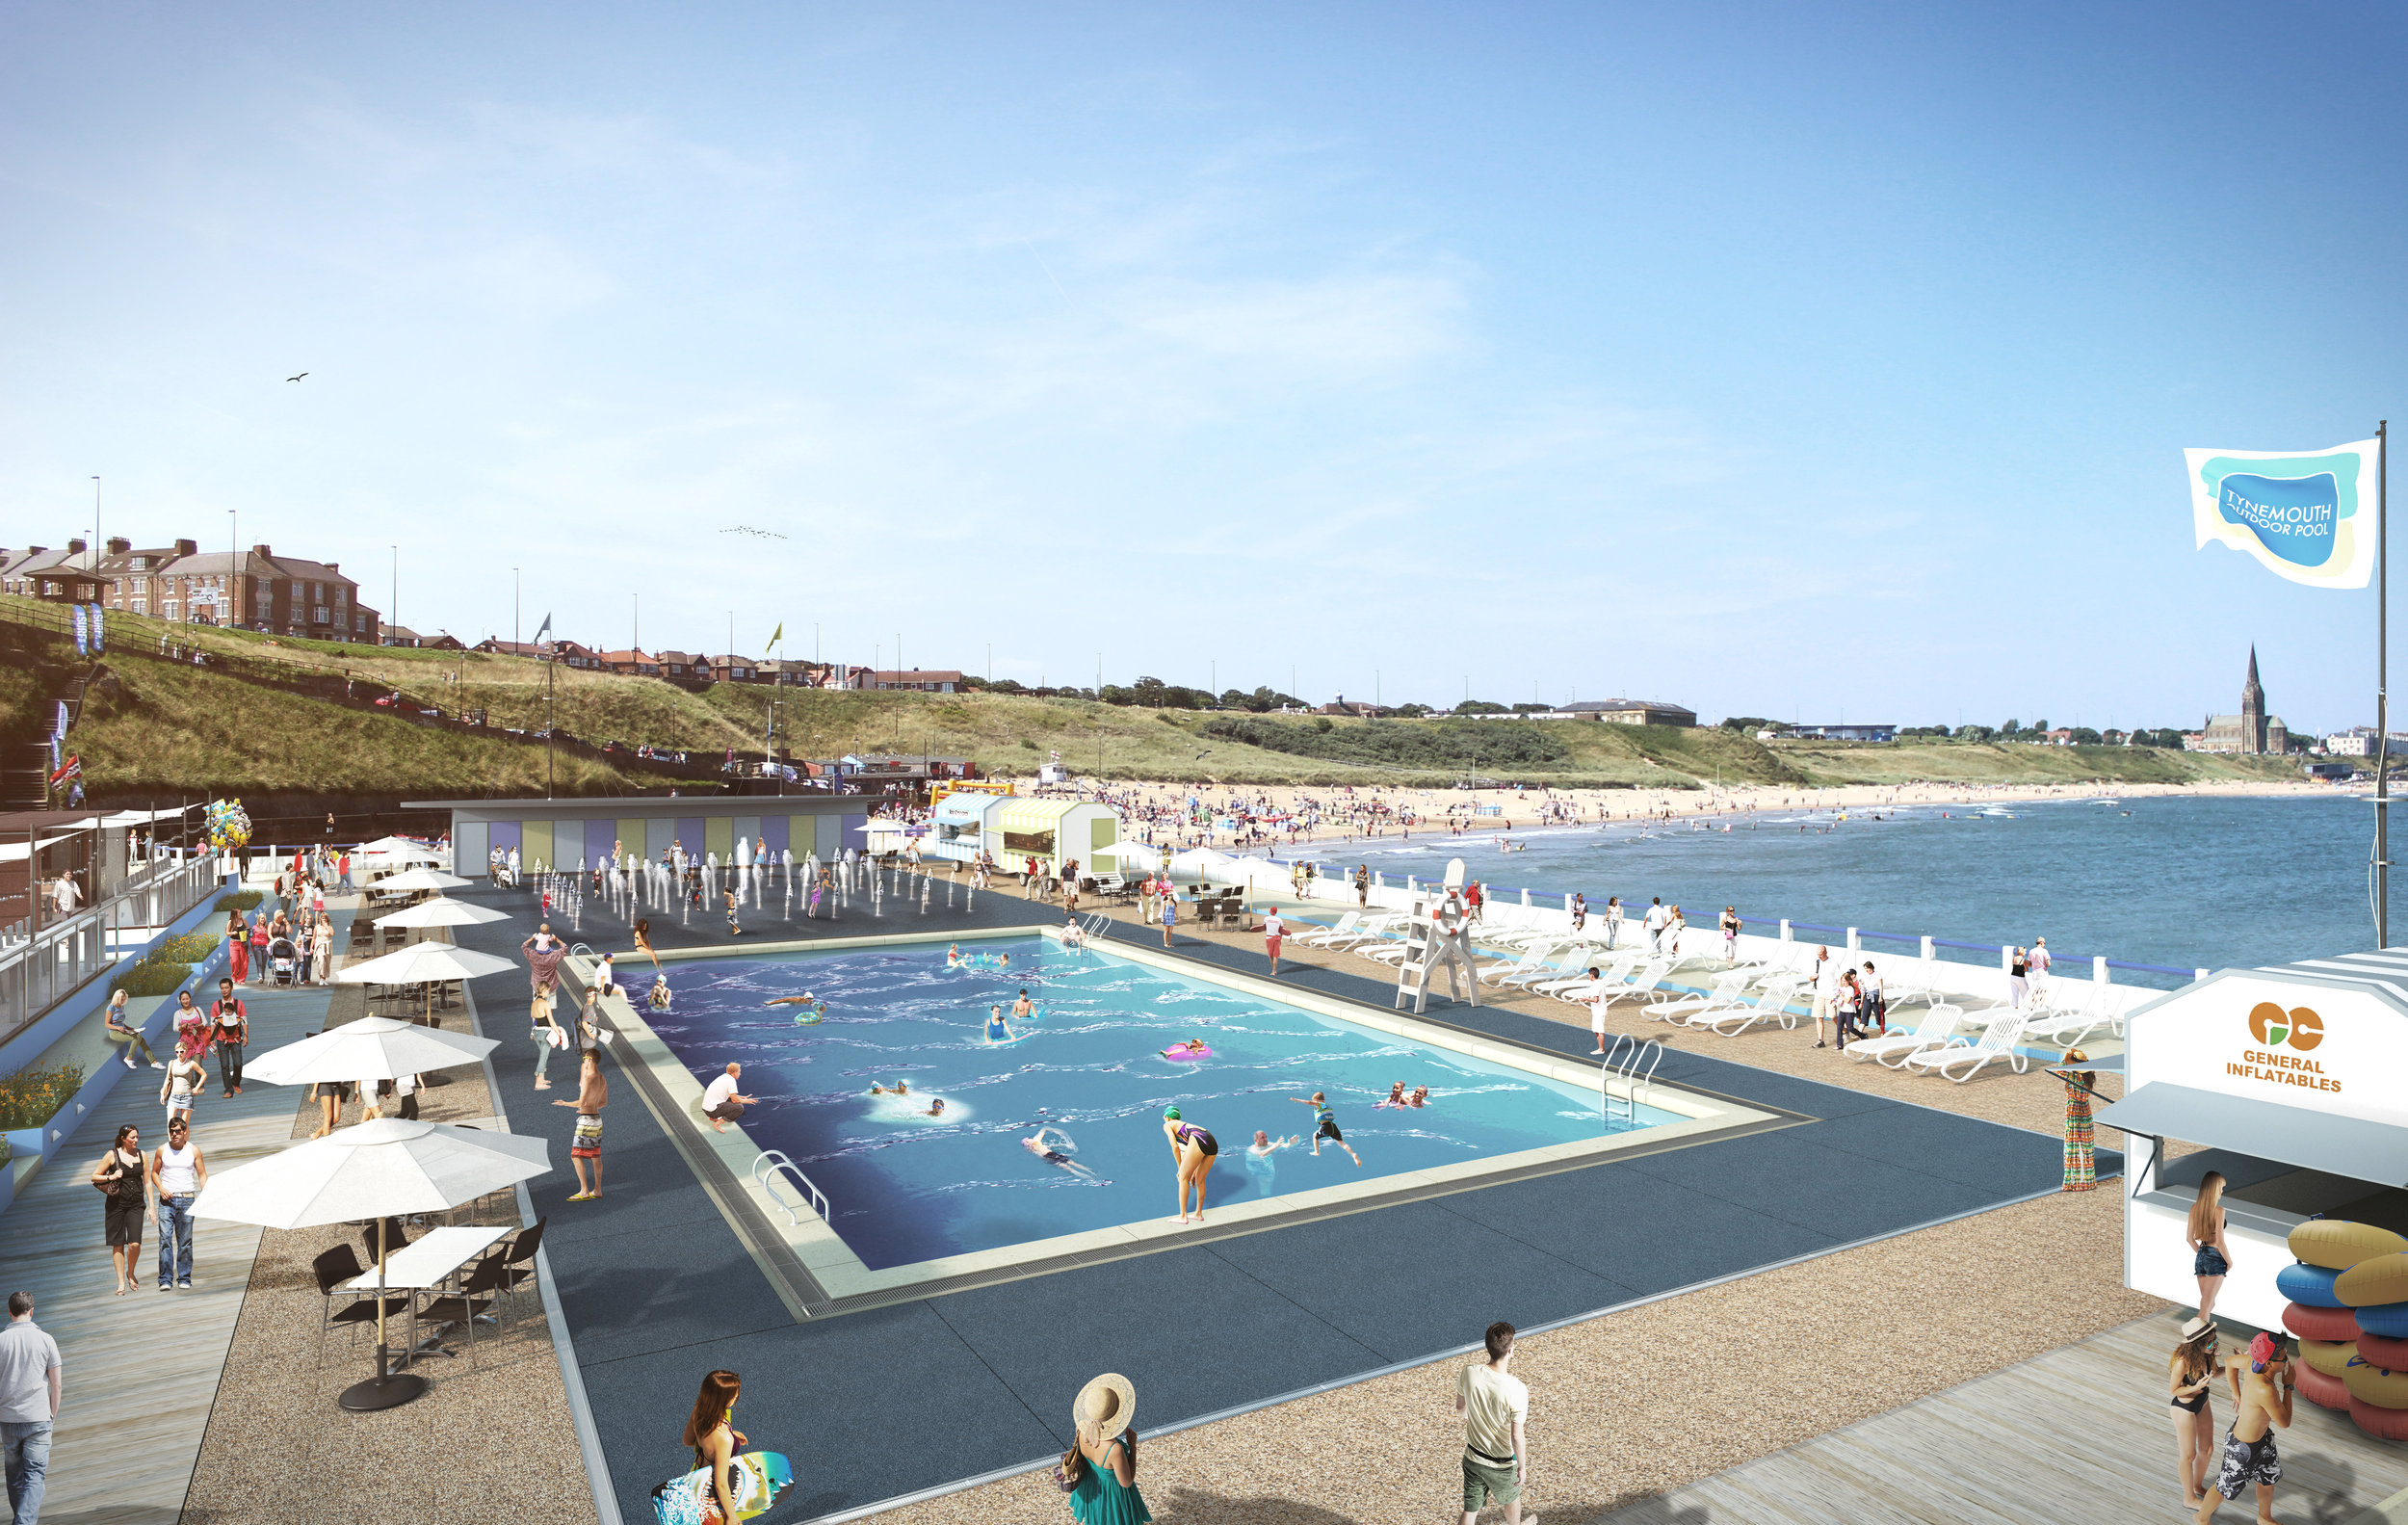 A visualisation of the outdoor pool that The Friends of Tynemouth Outdoor Pool are hoping to create.